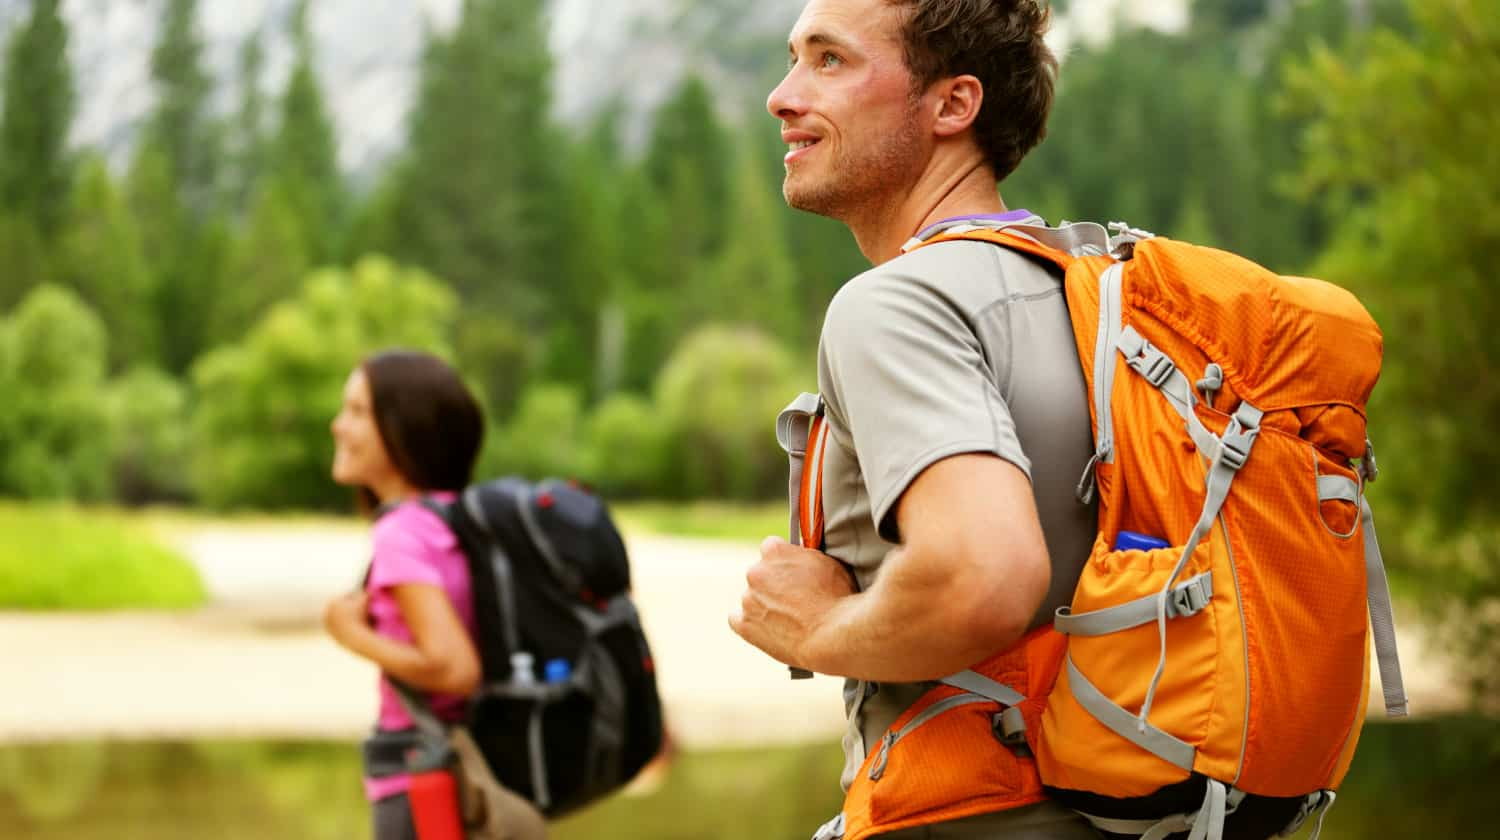 Featured | Hikers - people hiking, man looking at mountain | Outdoor Survival Gear And Gadgets on Amazon Under $100